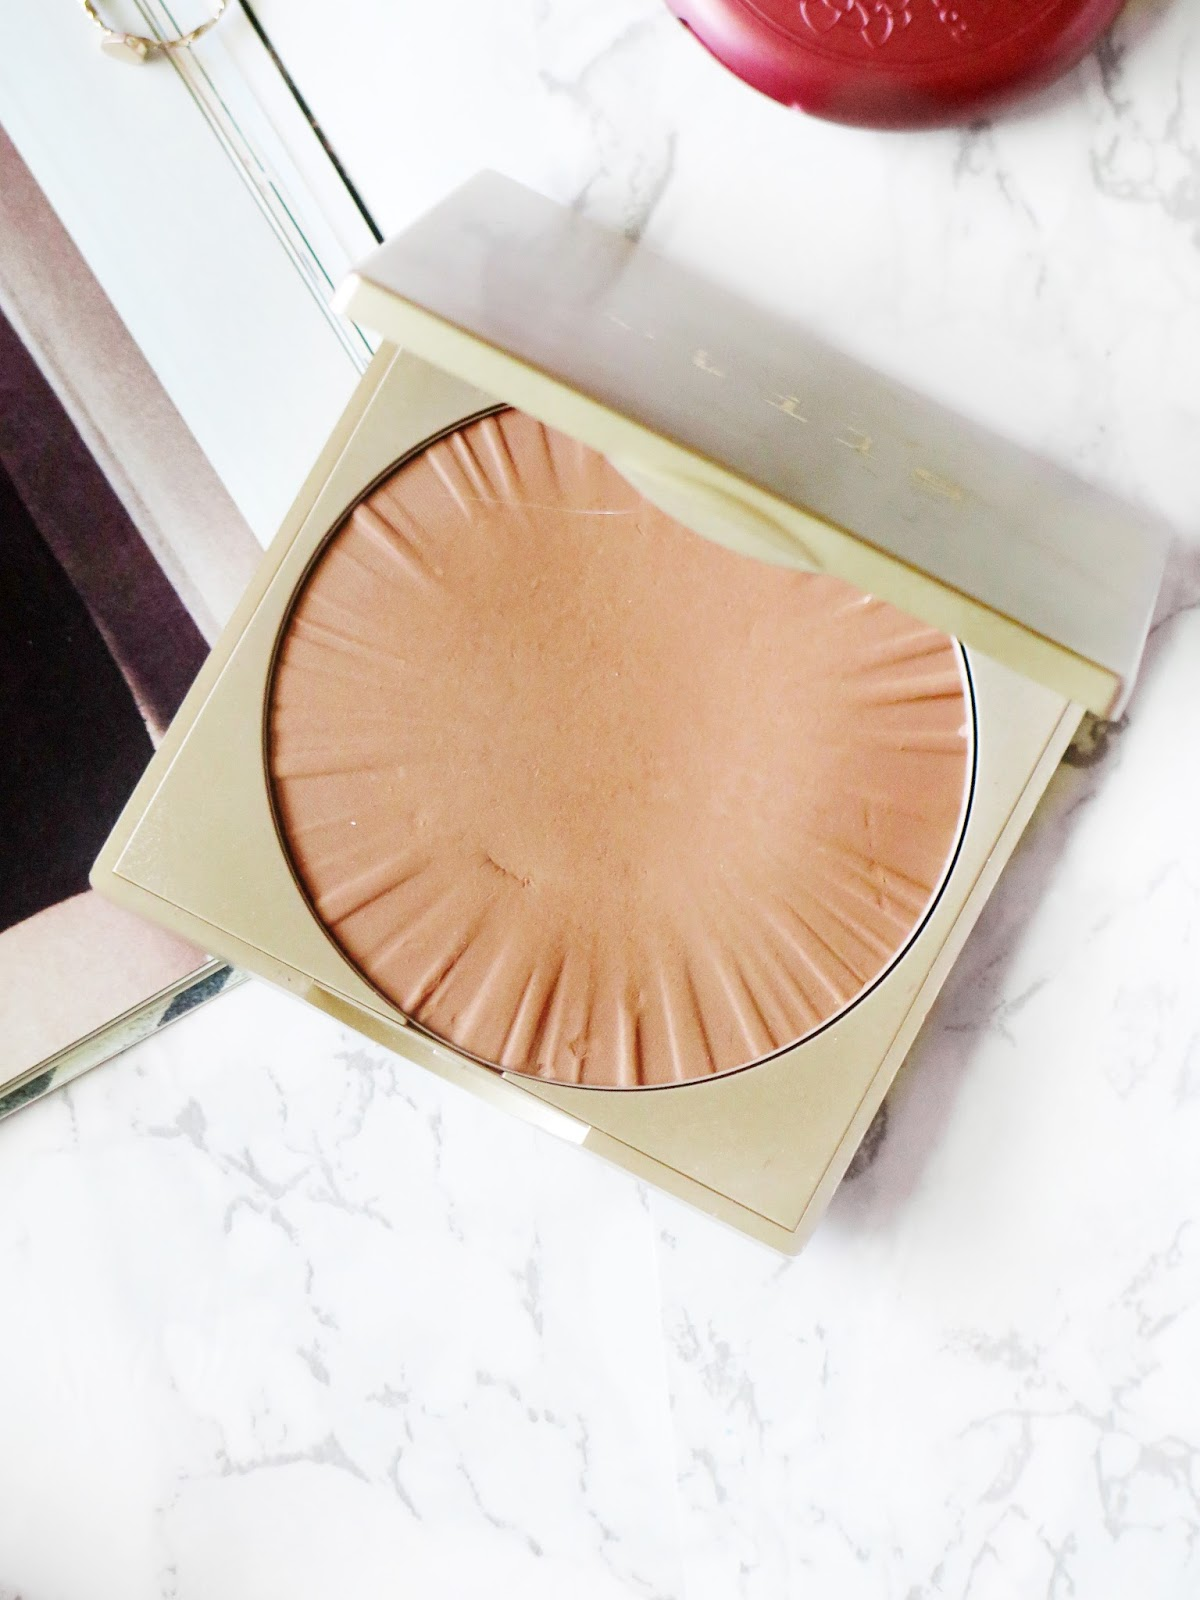 Fair Skin Friendly | Stila Cosmetics Stay All Day Bronzer For Face & Body | Review & Swatches | labellesirene.ca